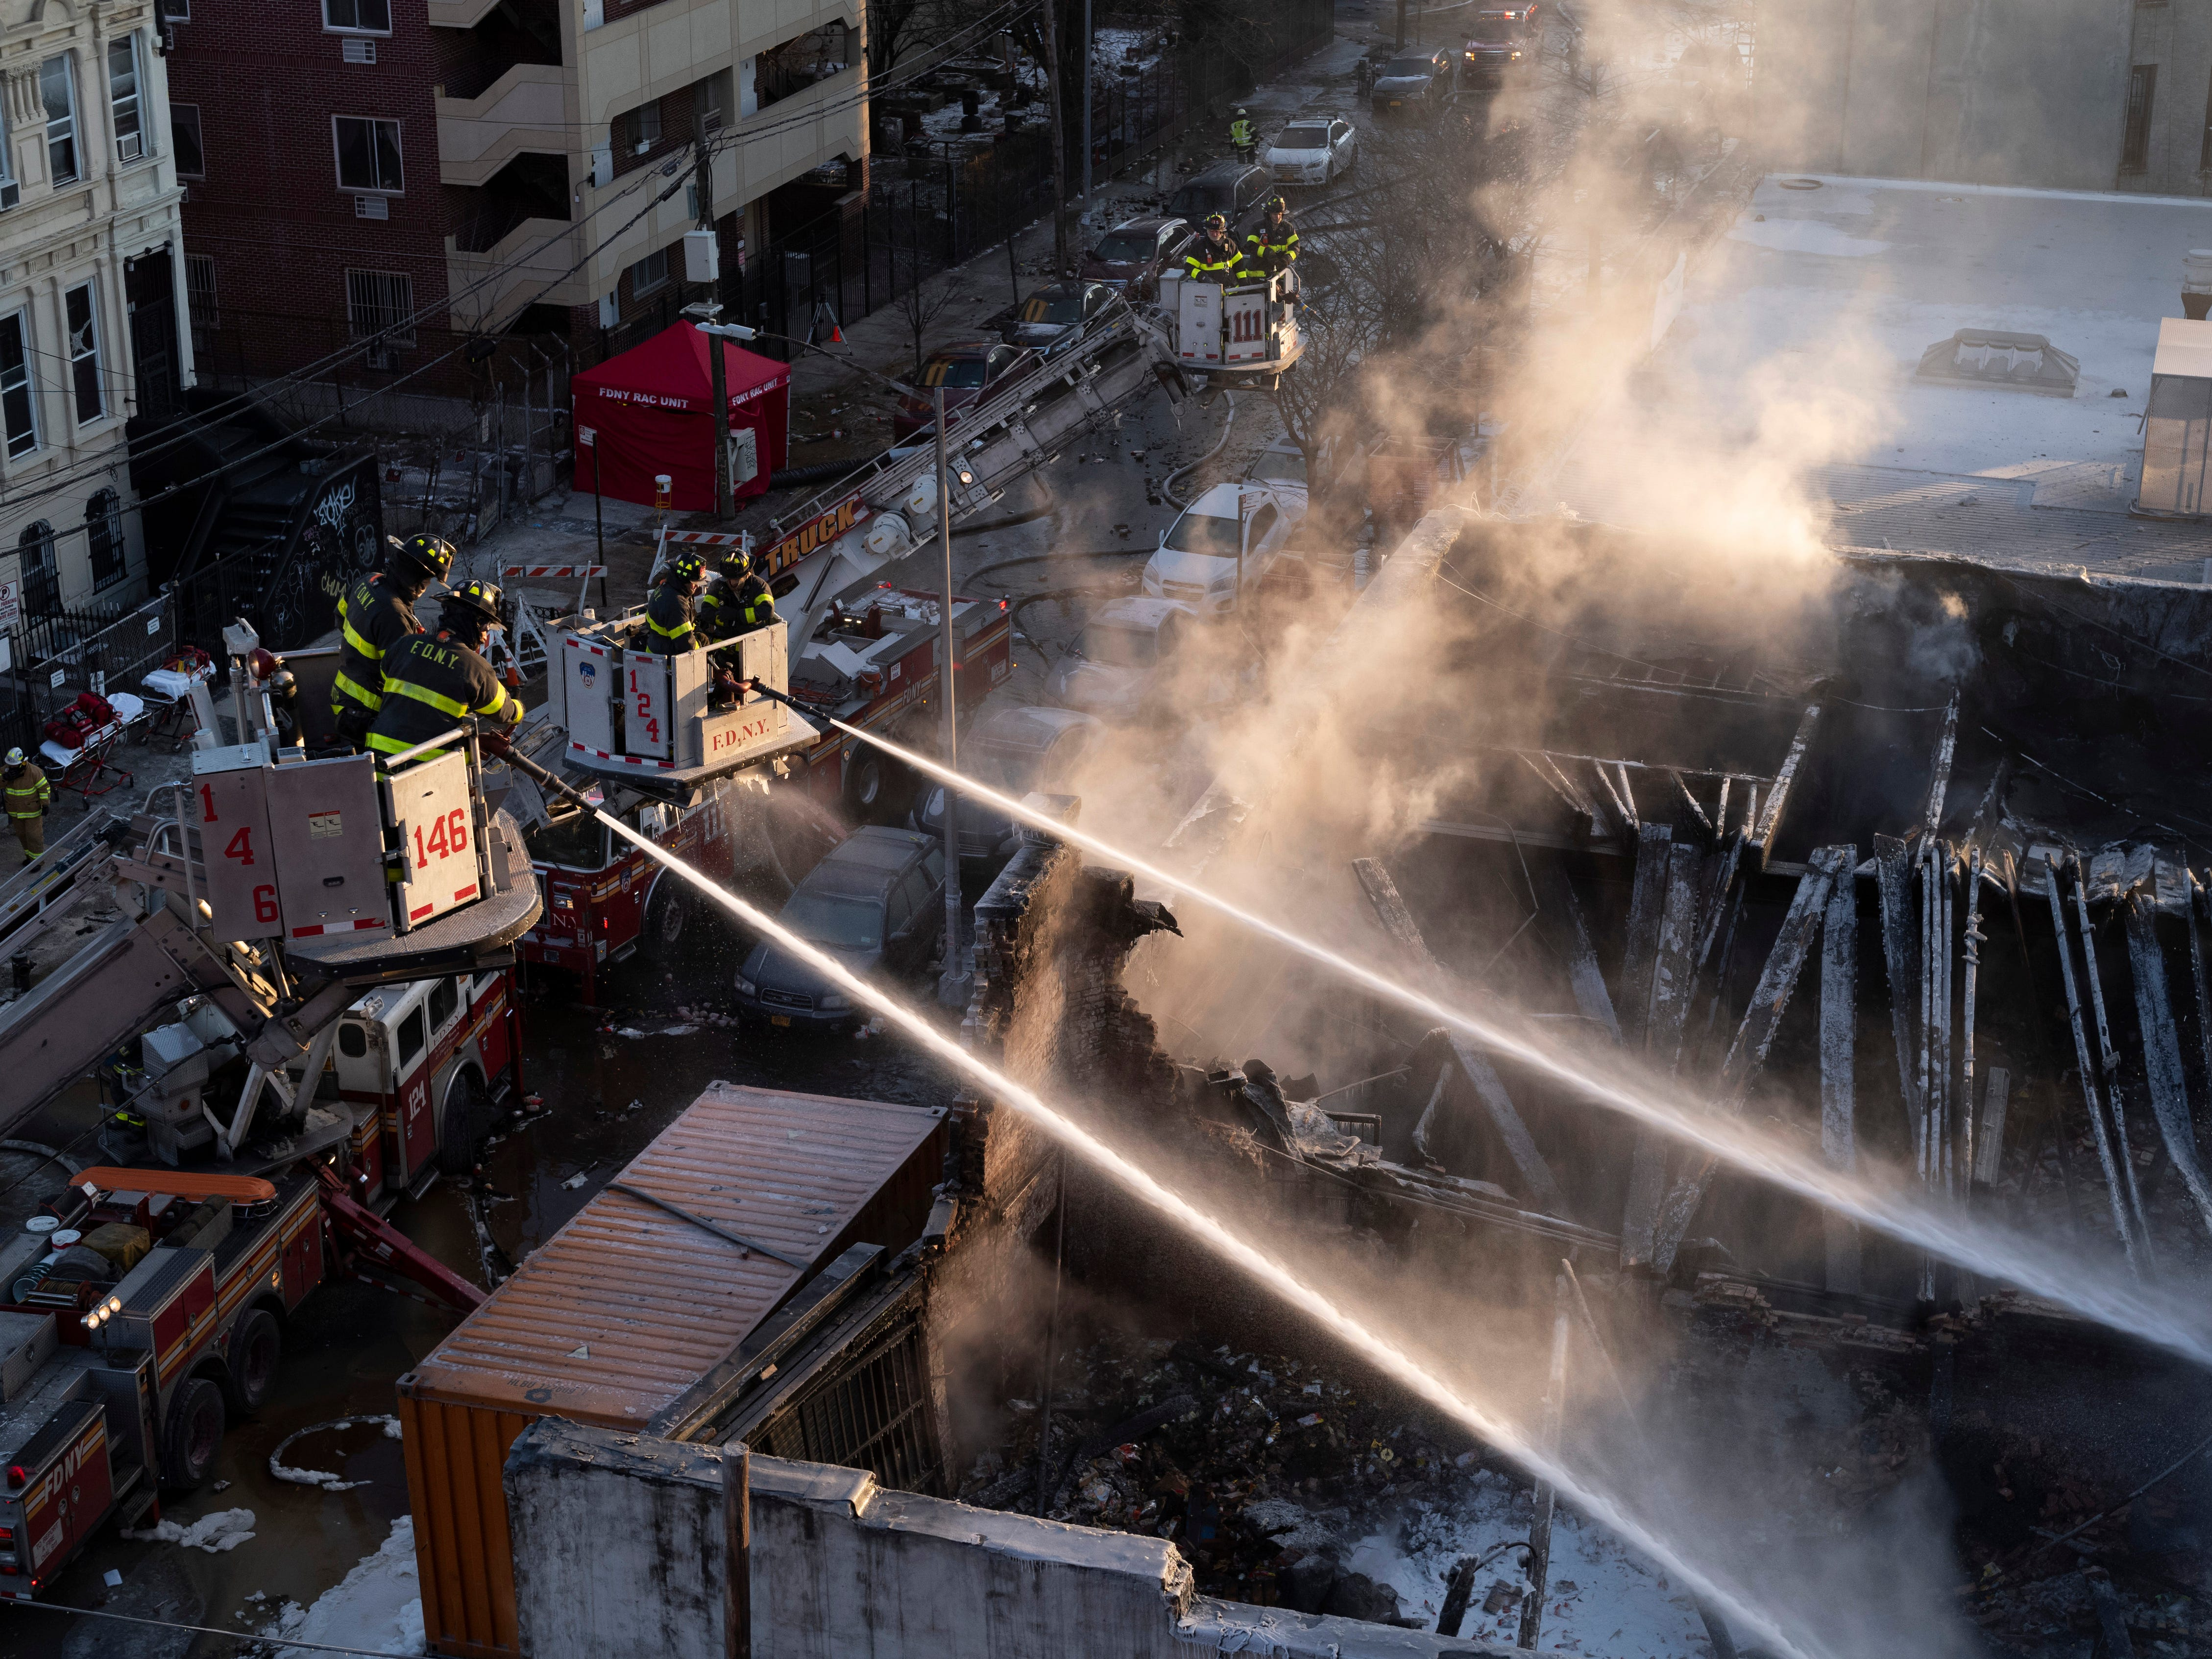 New York firefighters battle a blaze in a commercial building in the Bedford Stuyvesant neighborhood of Brooklyn, Jan. 31, 2019 in New York.